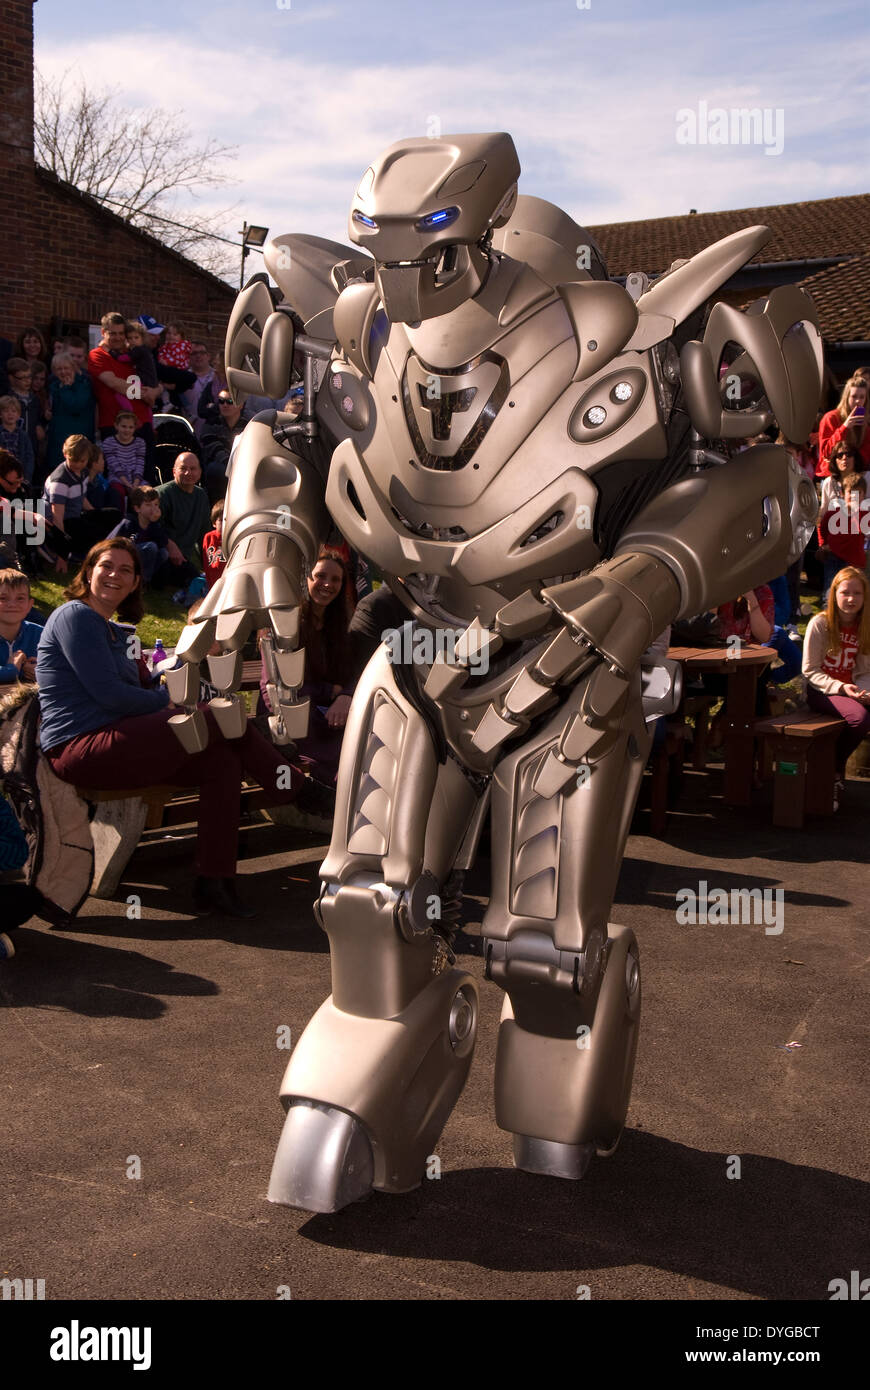 Titan the Robot appearing at the STEM (Science, Technology, Engineering, Mathermatics) Festival, Liphook, Hampshire, UK. - Stock Image